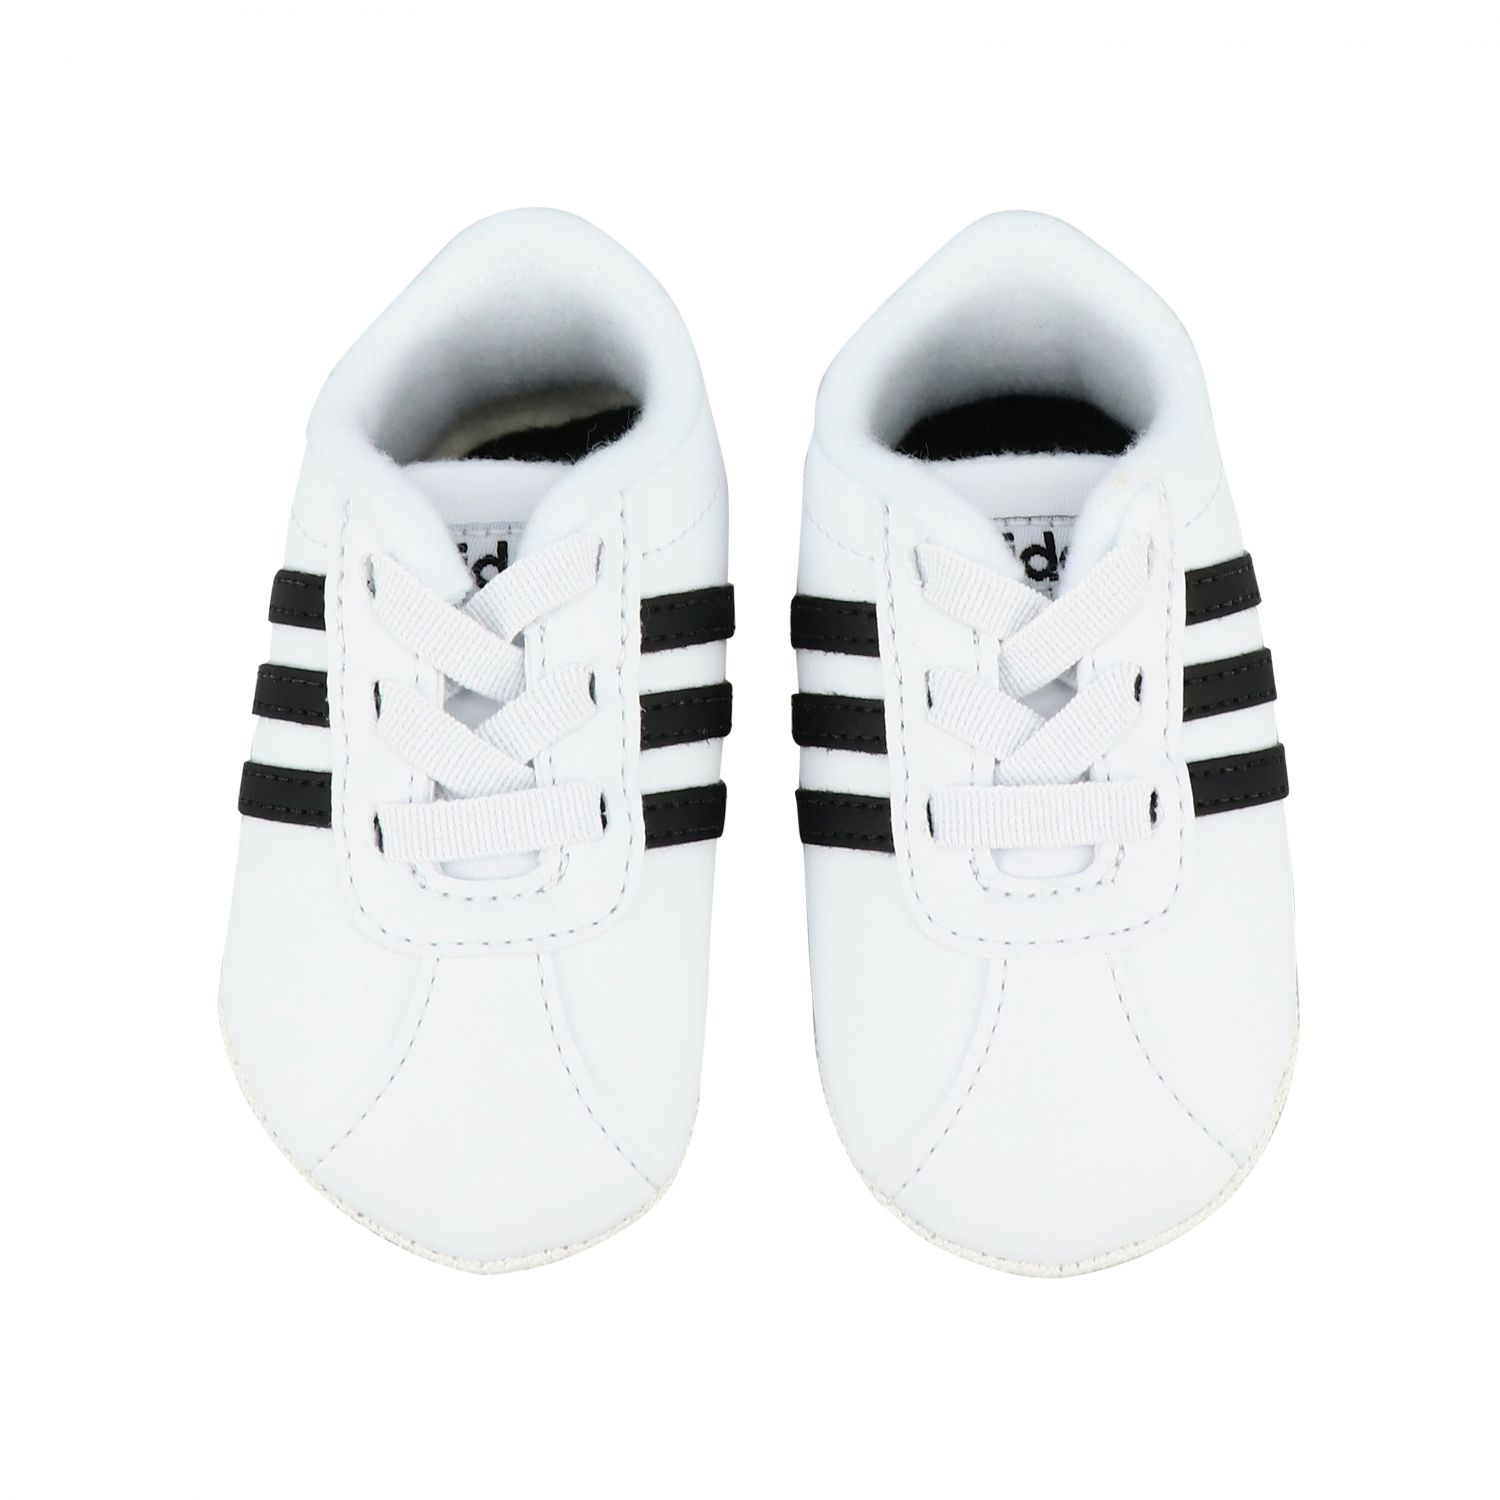 Zapatos Adidas Originals: Zapatos niños Adidas Originals blanco 3